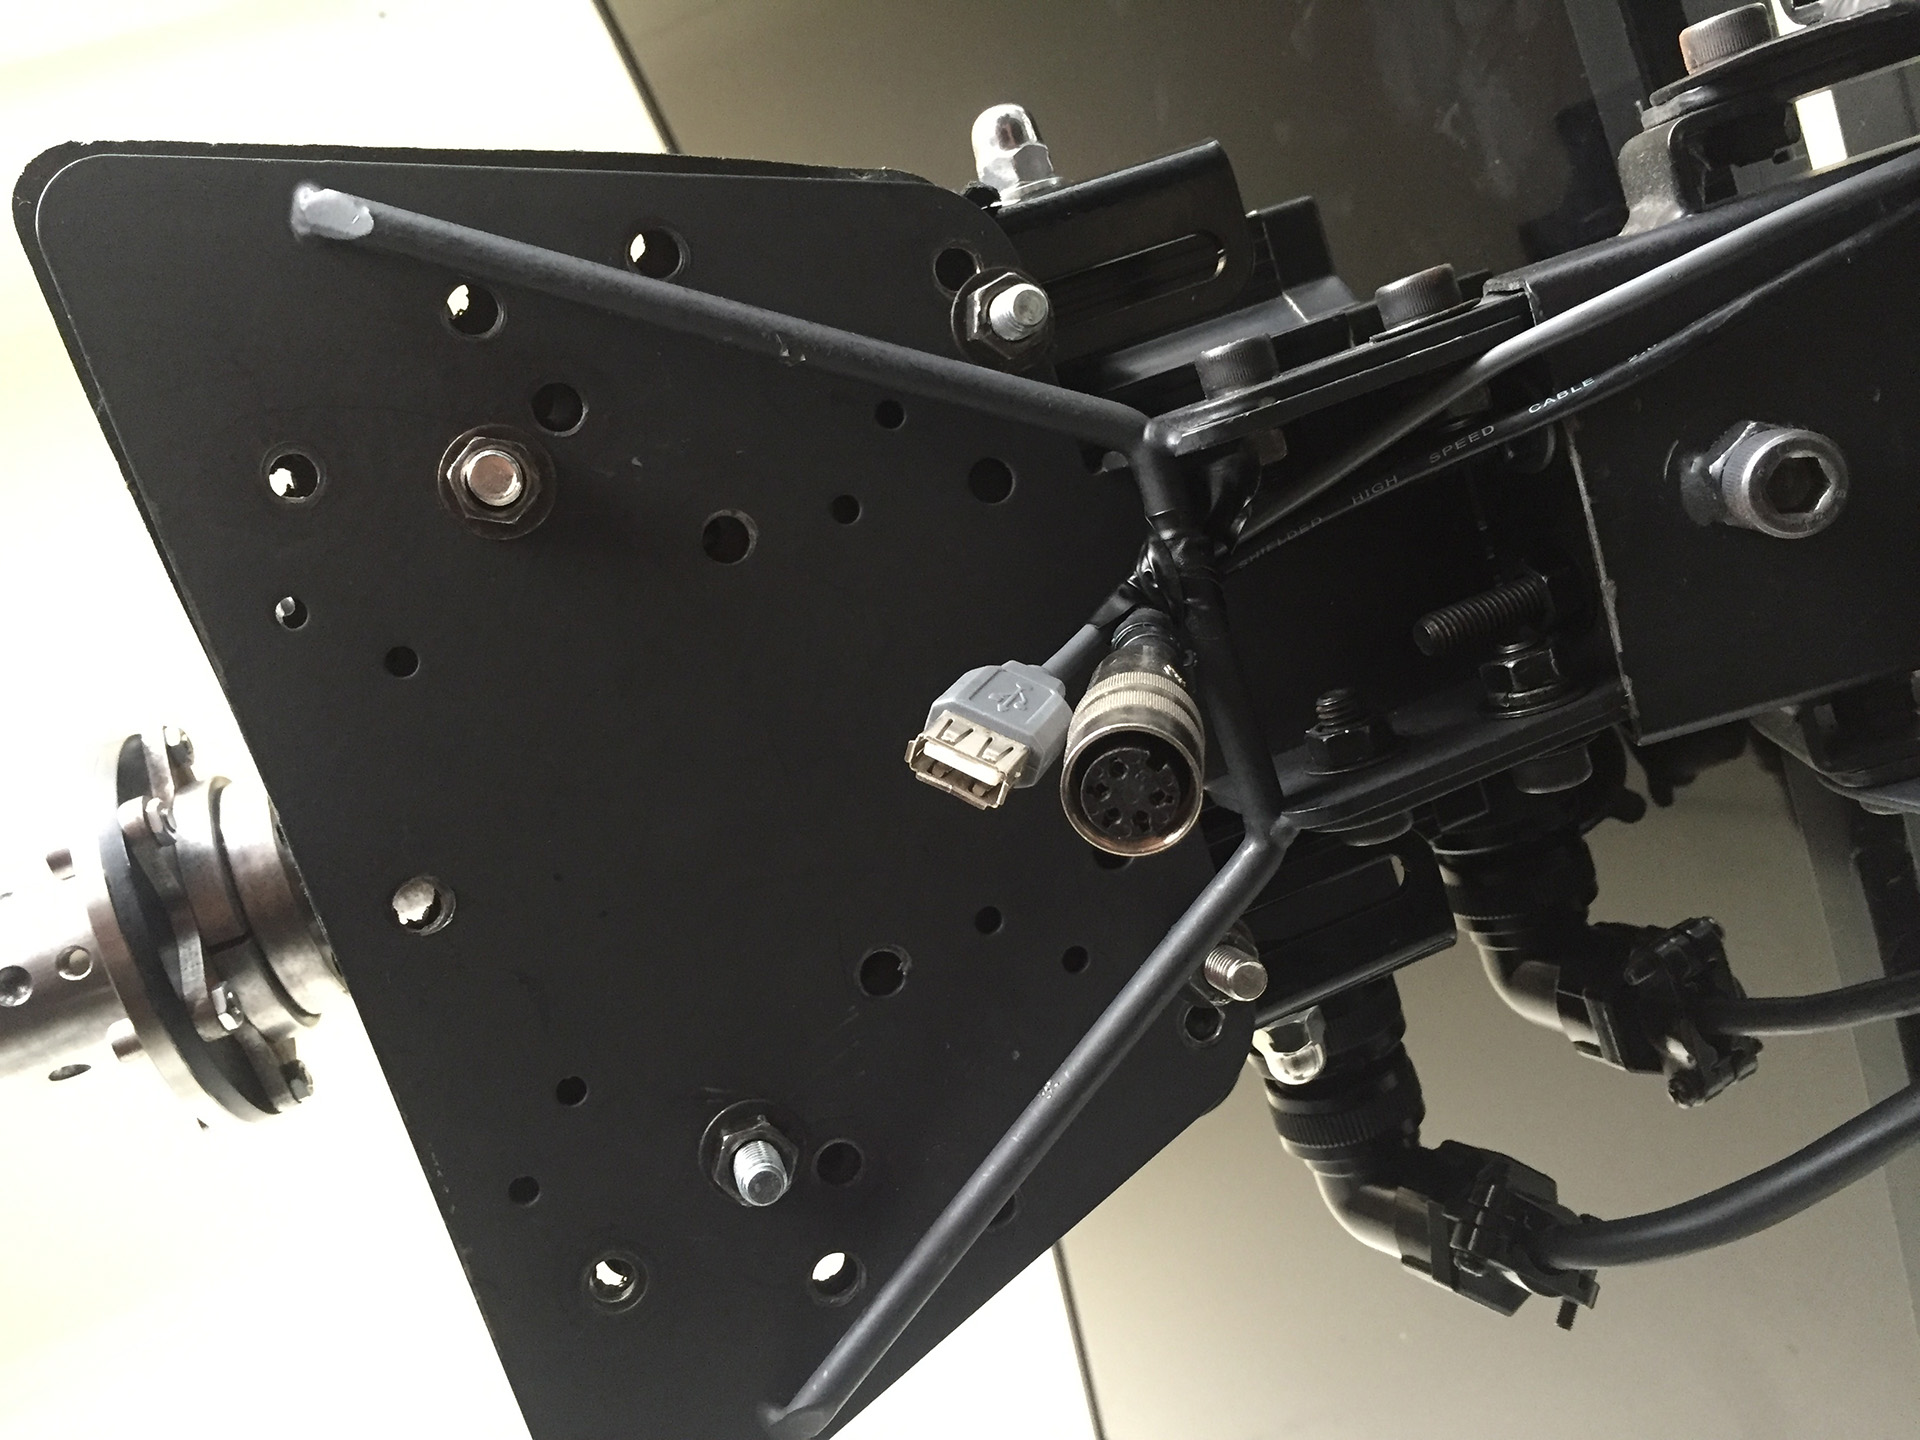 Project 8020 Rig with Tactile from Obutto Revolution